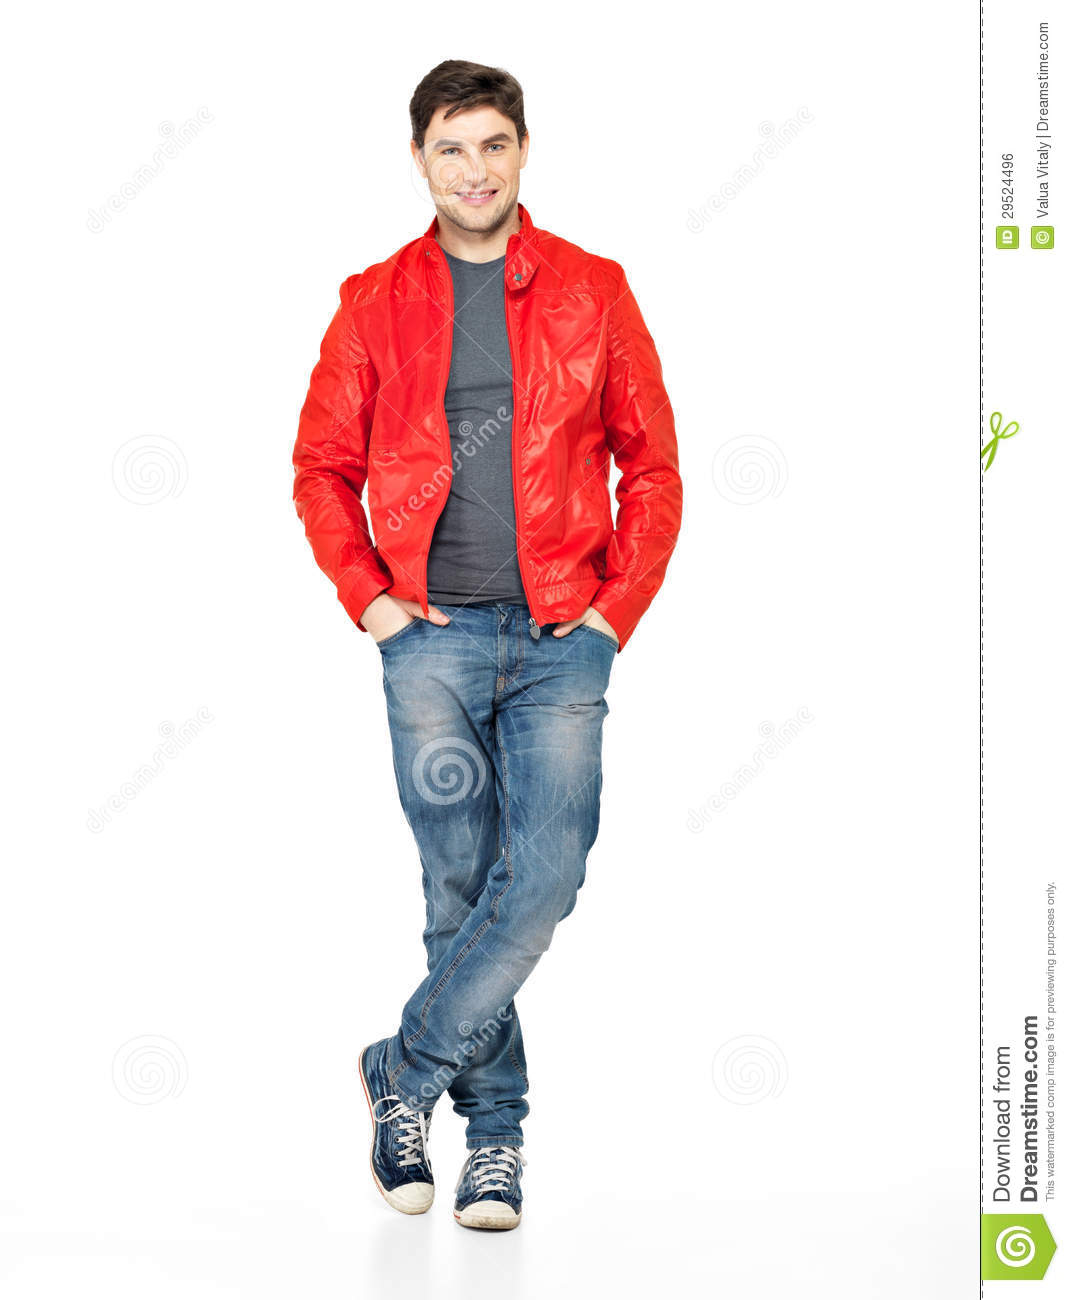 Smiling Happy Man In Red Jacket Blue Jeans And Gymshoes